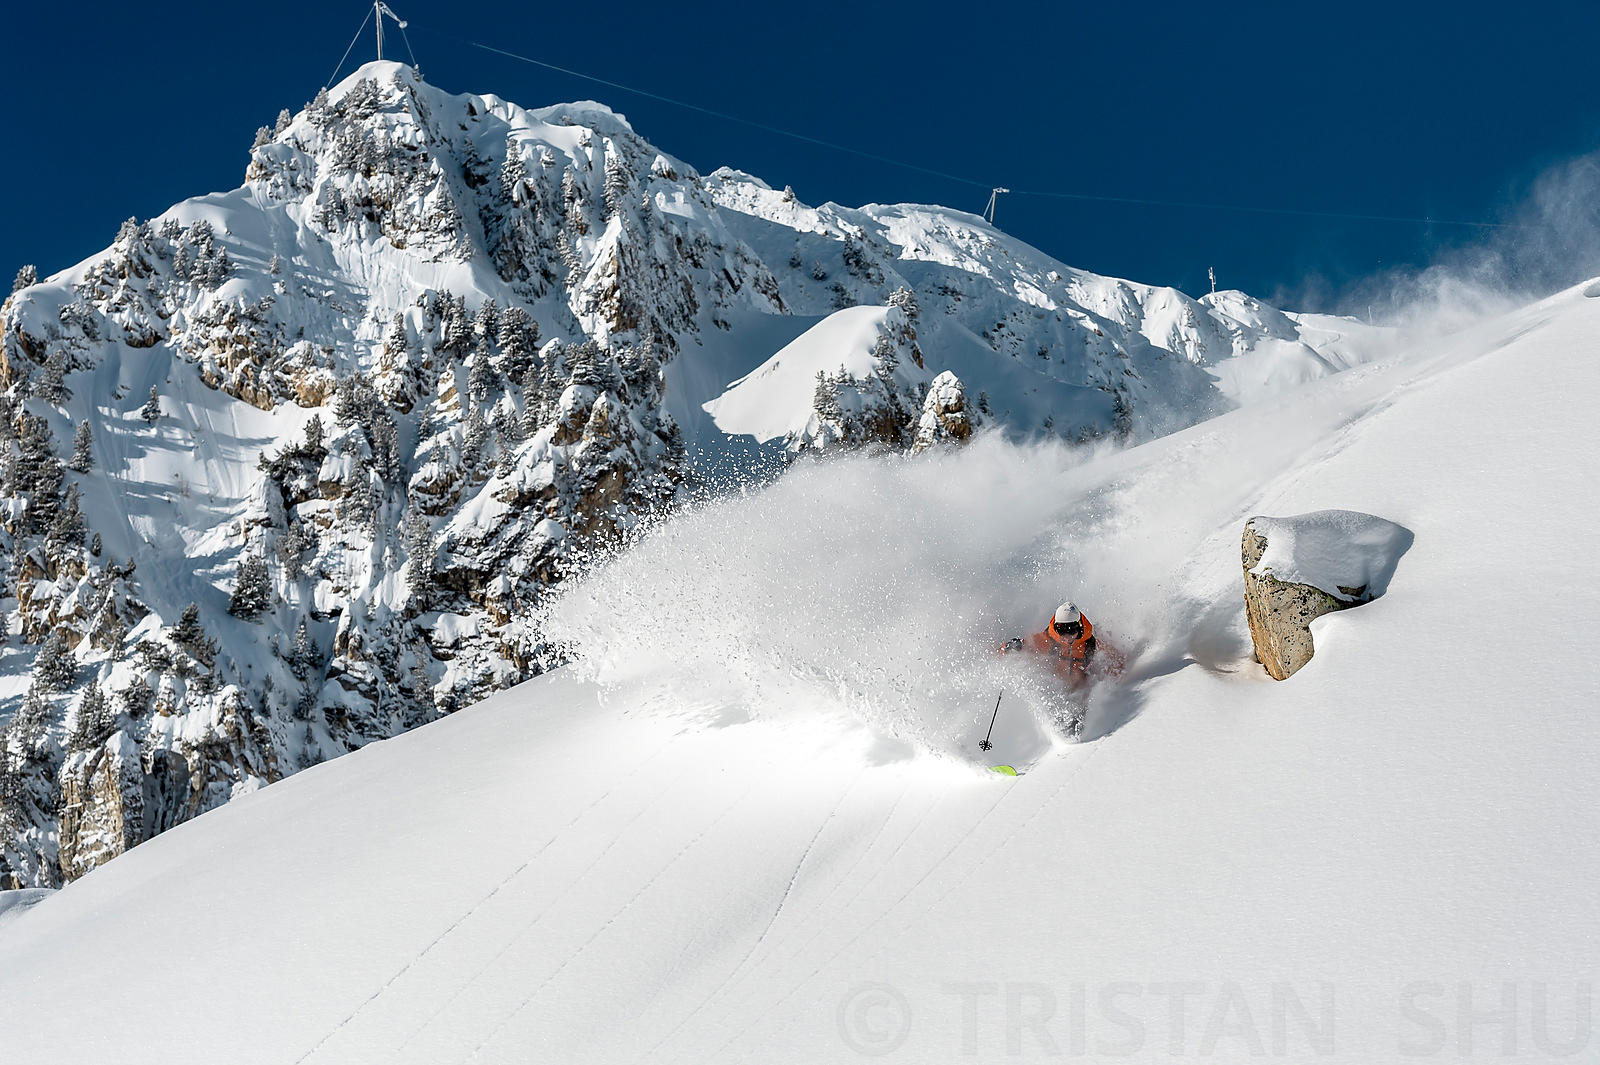 Powder turn with Romain Grojean